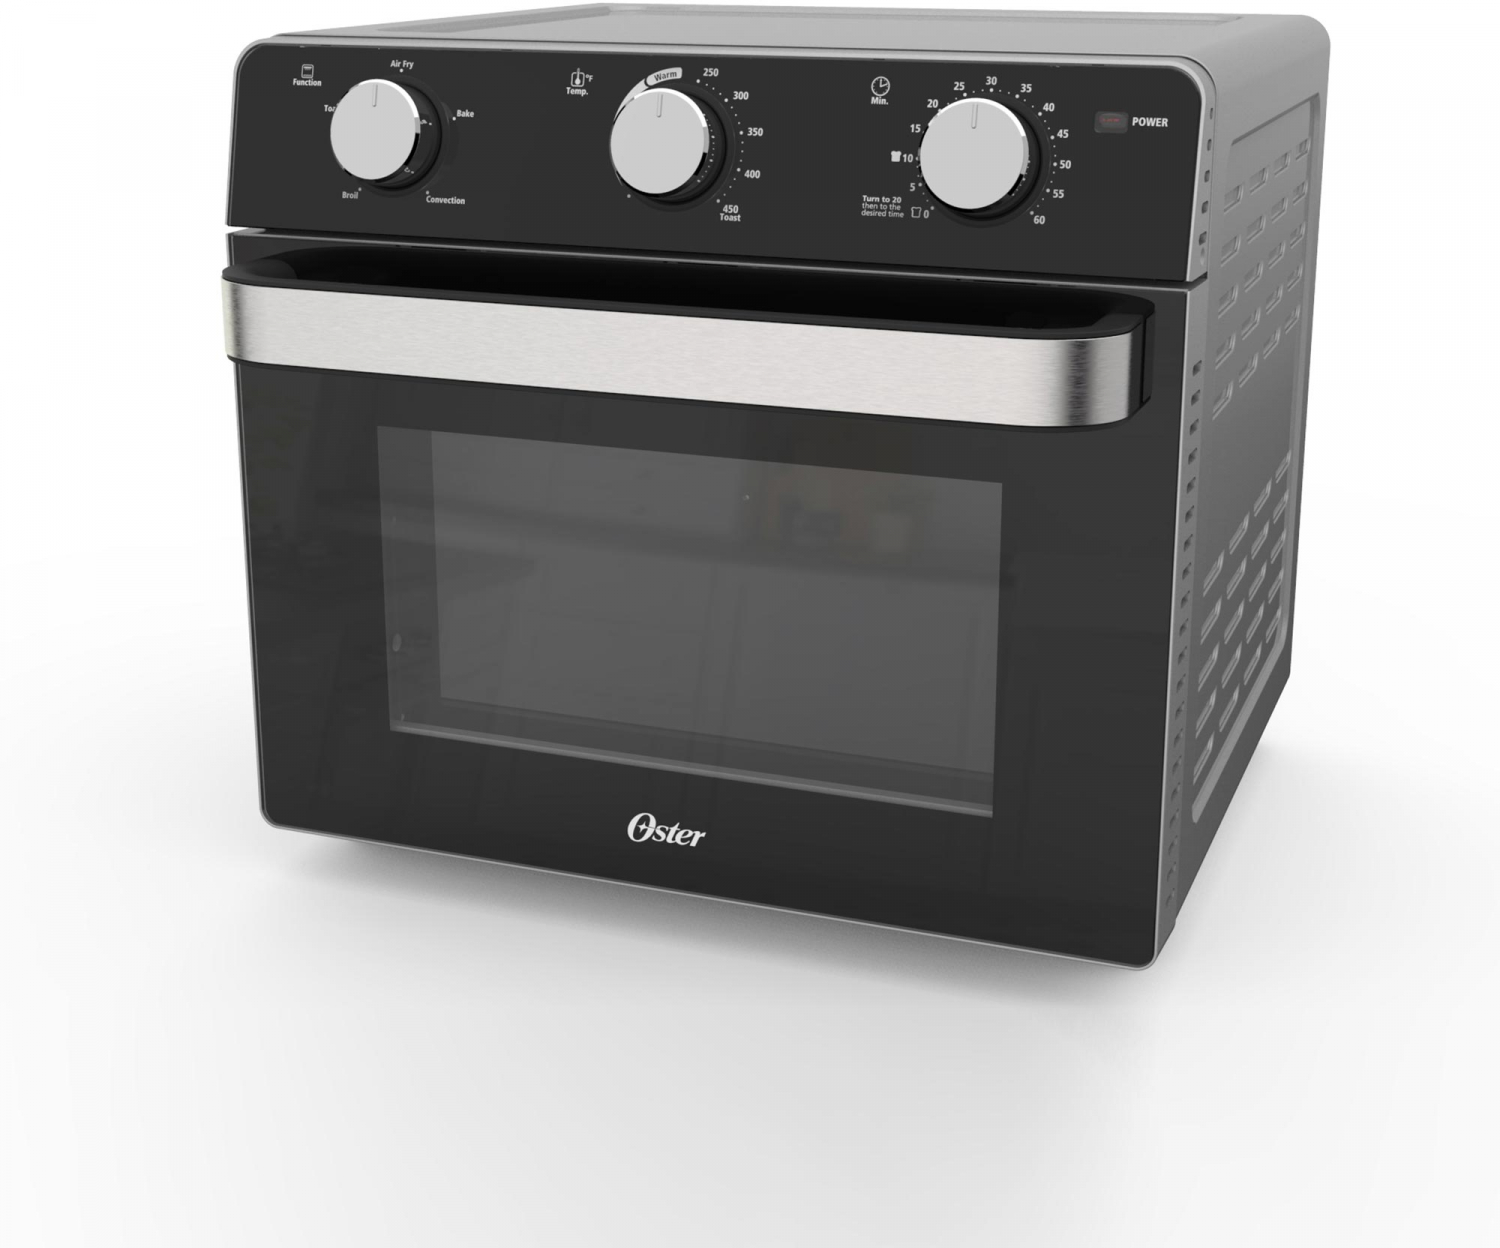 Oster Black Countertop Toaster Oven with Air Fryer, 1 Each ...